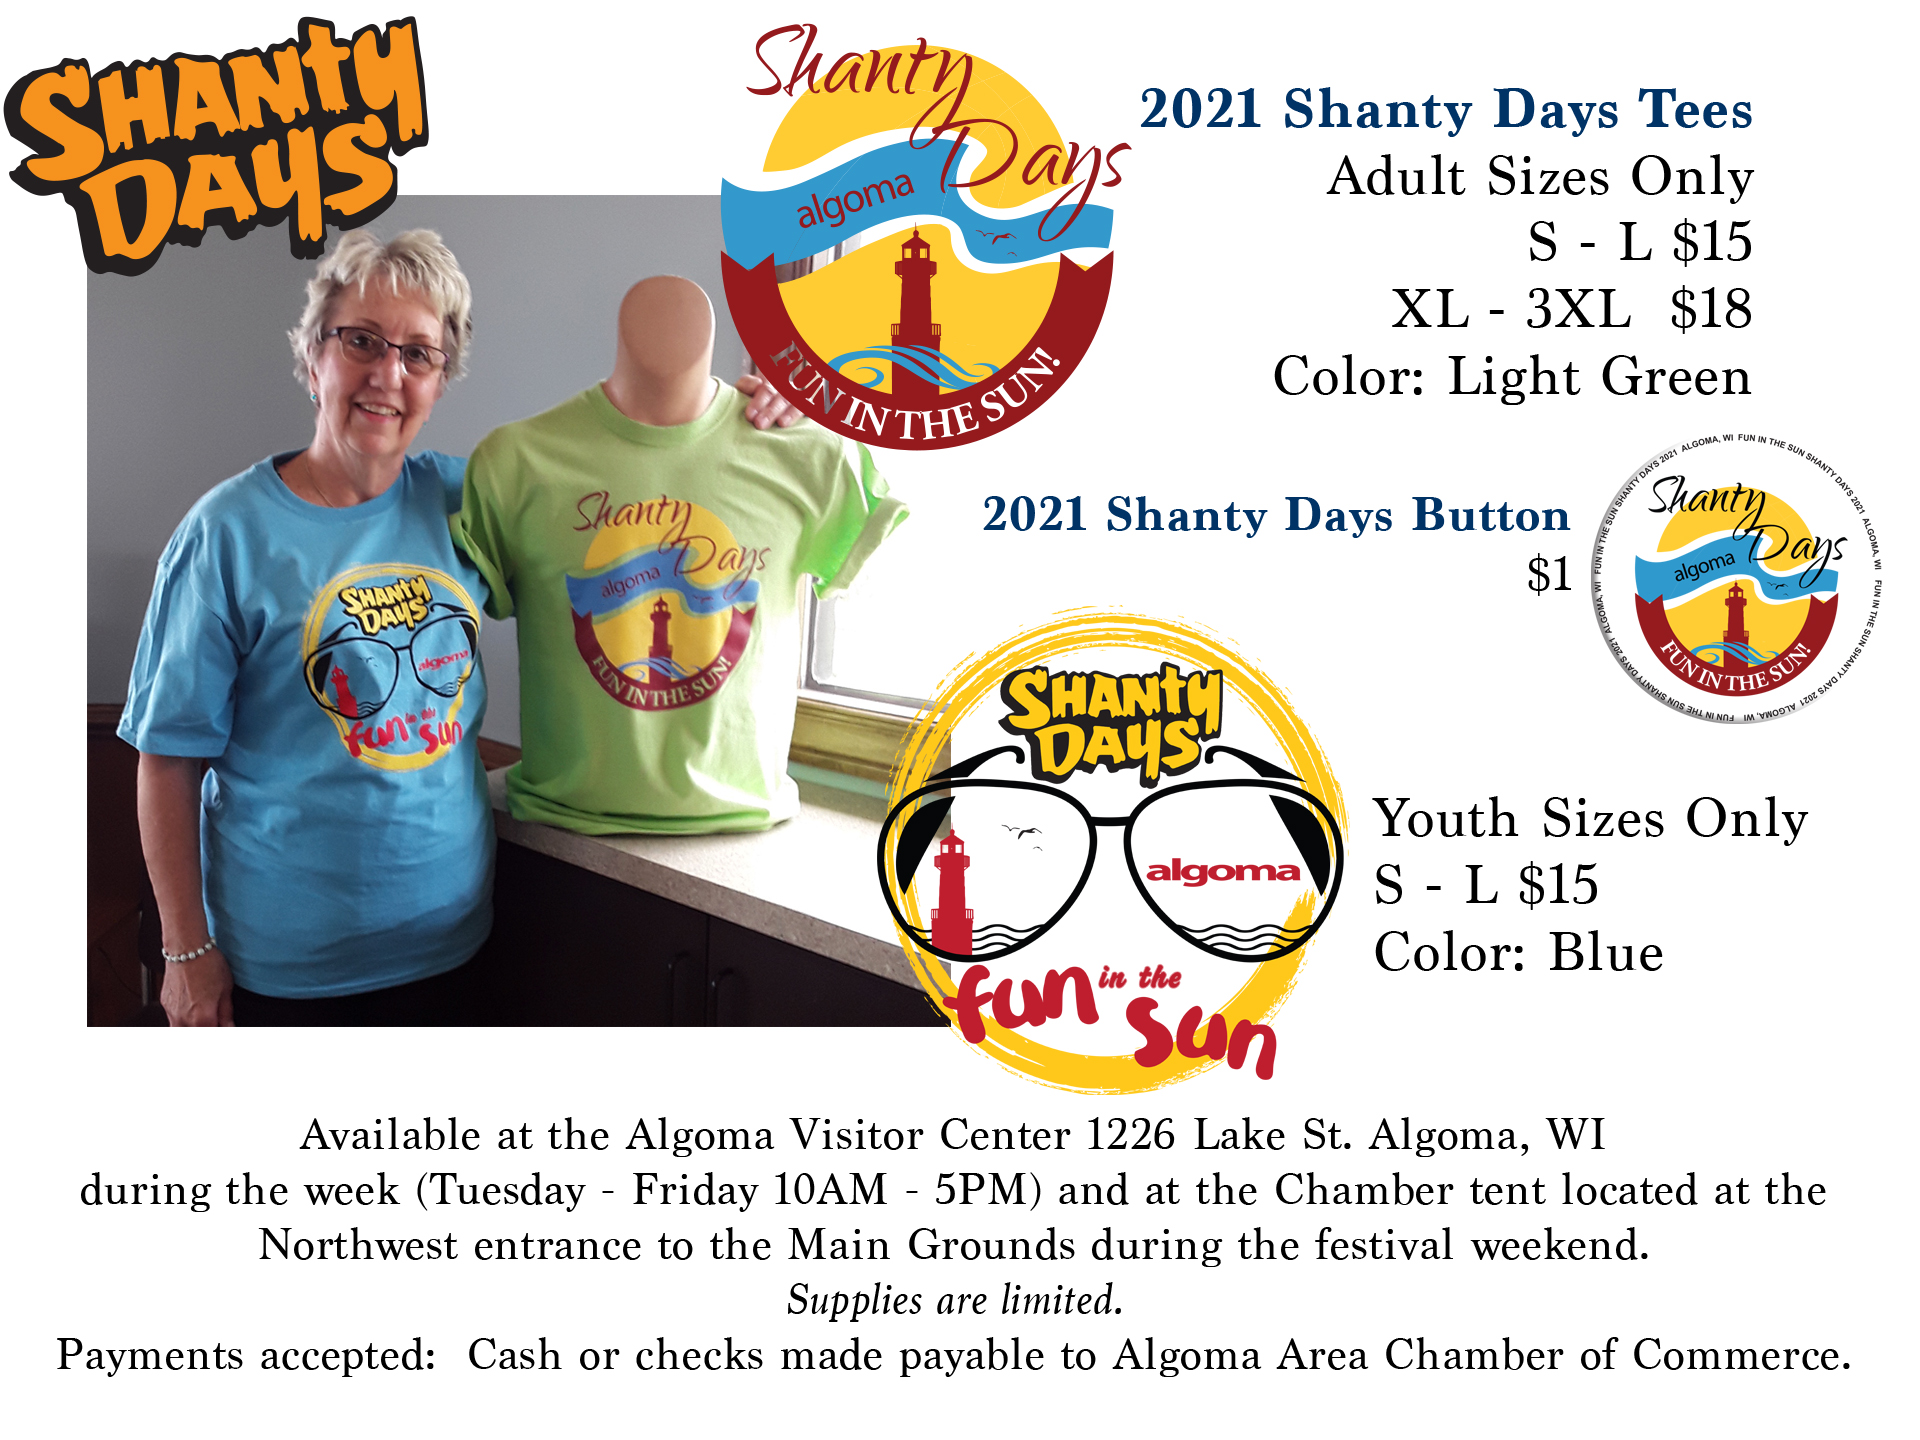 2021 Shanty Days buttons and event shirts